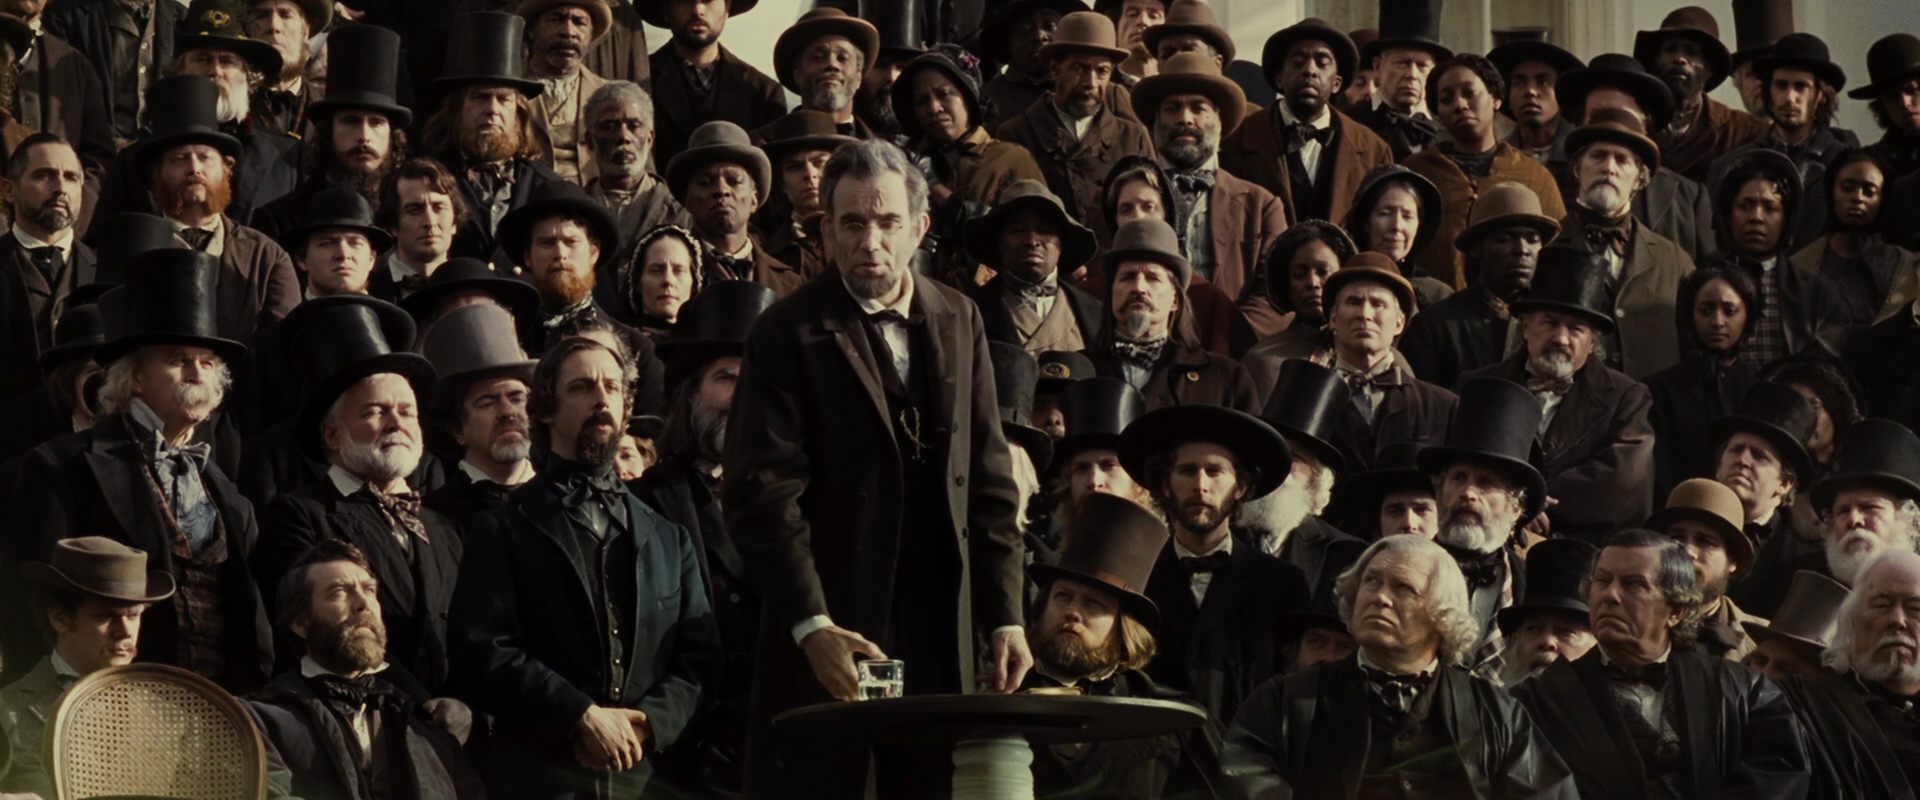 an analysis of the 2012 movie lincoln Lincoln: film review 9:00 pm pdt 11/1/2012 by first unveiled at an unannounced sneak preview at the new york film festival on oct 8, lincoln will receive its.